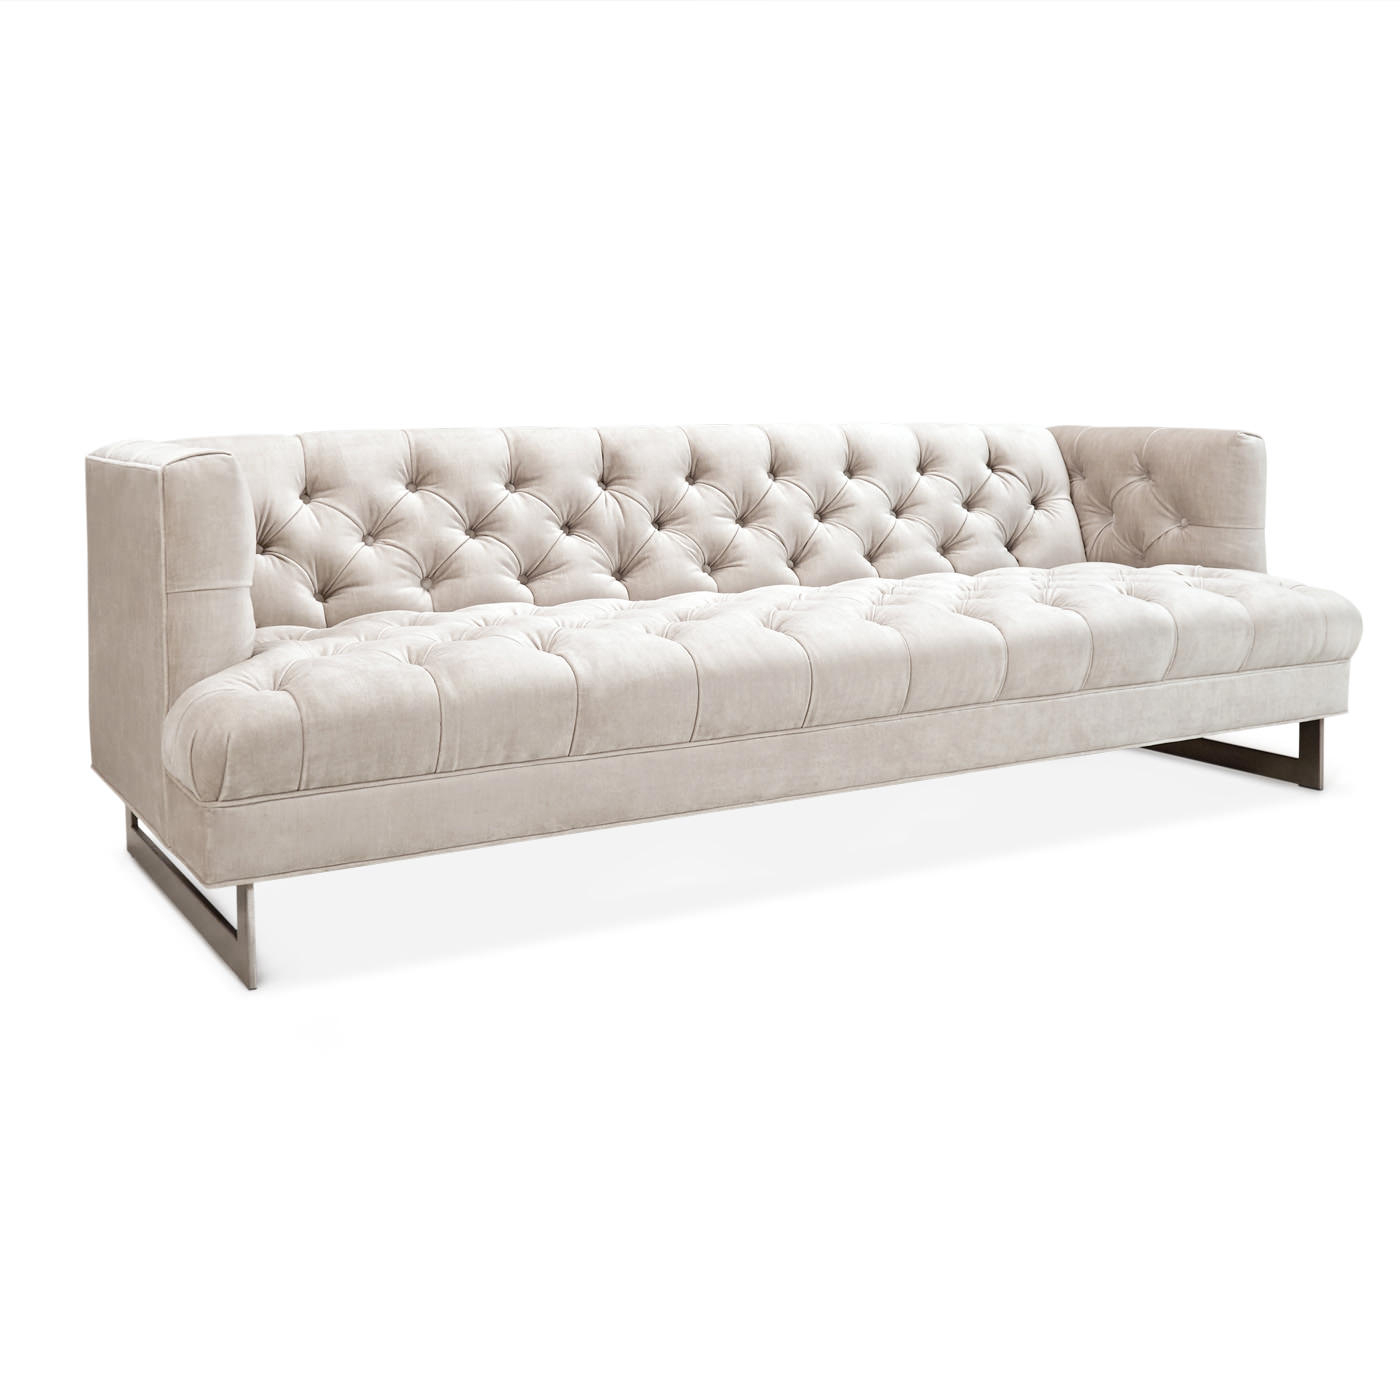 Baxter T Arm Sofa | Modern Furniture | Jonathan Adler Inside Alder Grande Ii Sofa Chairs (View 24 of 25)